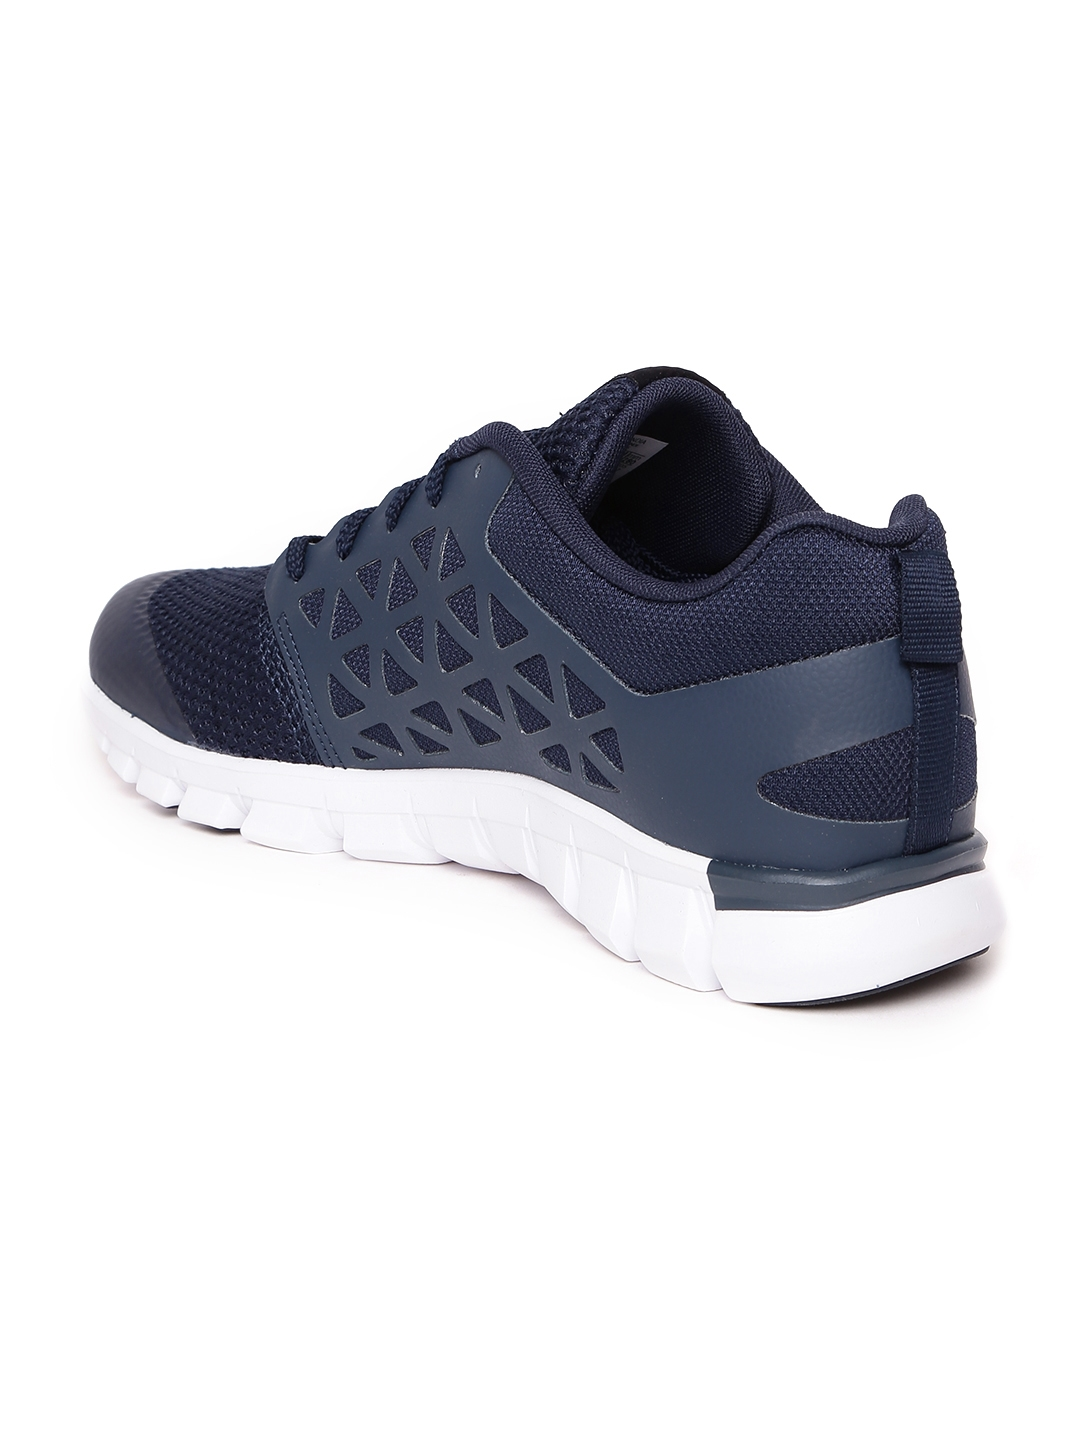 1ca1e5c6dd5 Buy Reebok Men Navy Blue Sublite XT Cushion 2.0 MT Running Shoes ...